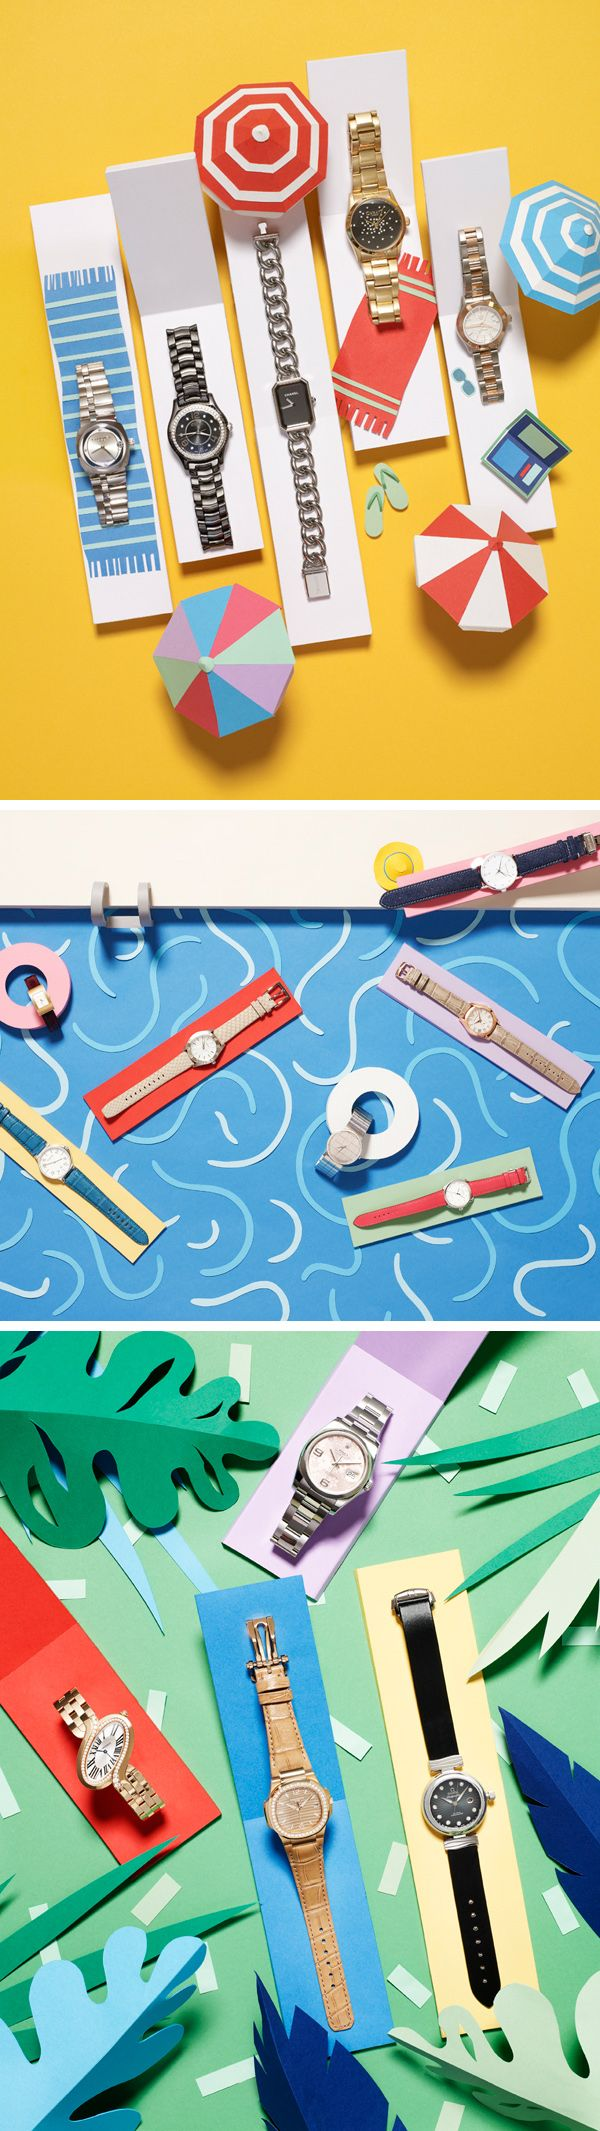 Set design by Hattie Newman for Grazia Magazine  What can't I say about this design? It is so fun and creative! The way they displayed the watches as beach goers in such a colorful setting is just lovely and adorable.